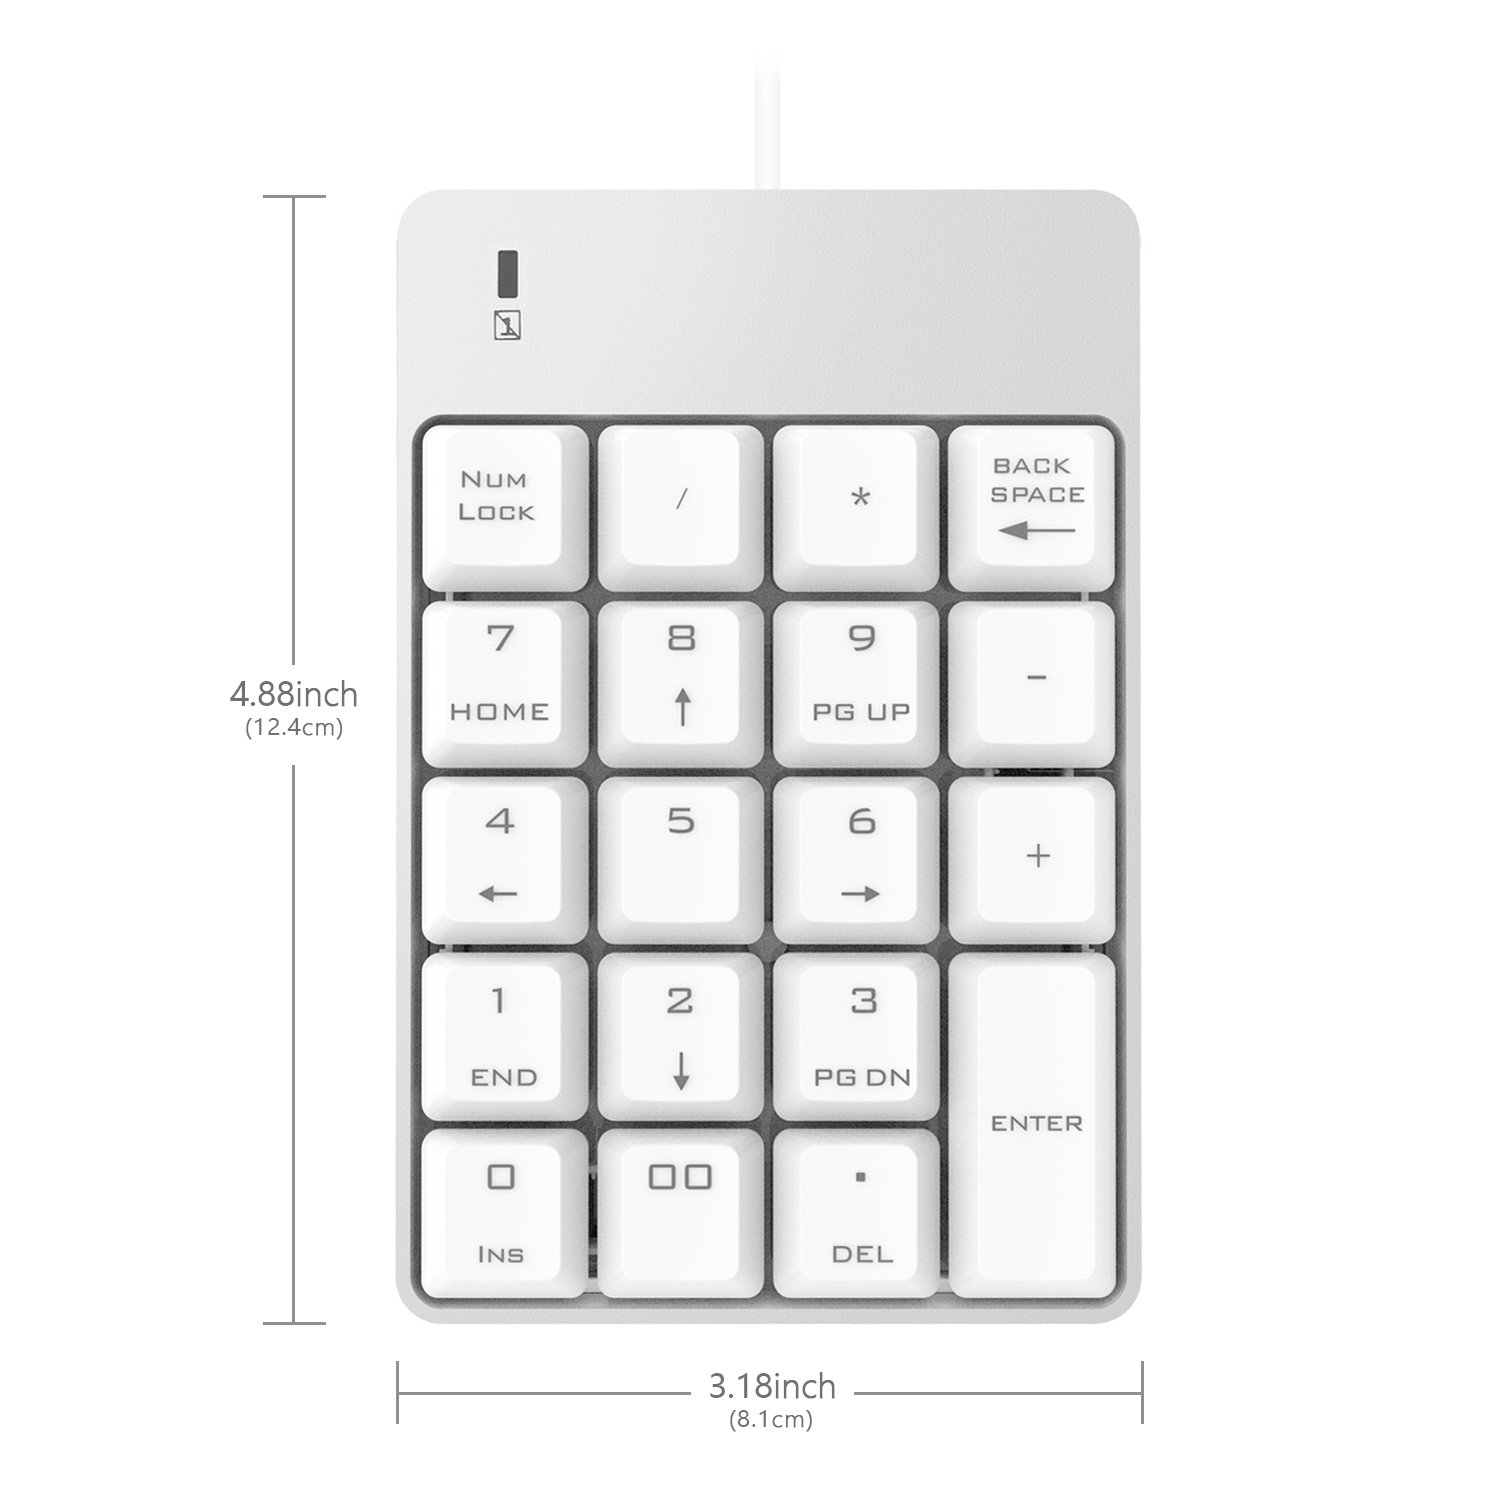 USB Numeric Keypad, Jelly Comb 19 Key Wired Mini Number Keyboard for Laptop  Desktop Computer PC - Silver and White